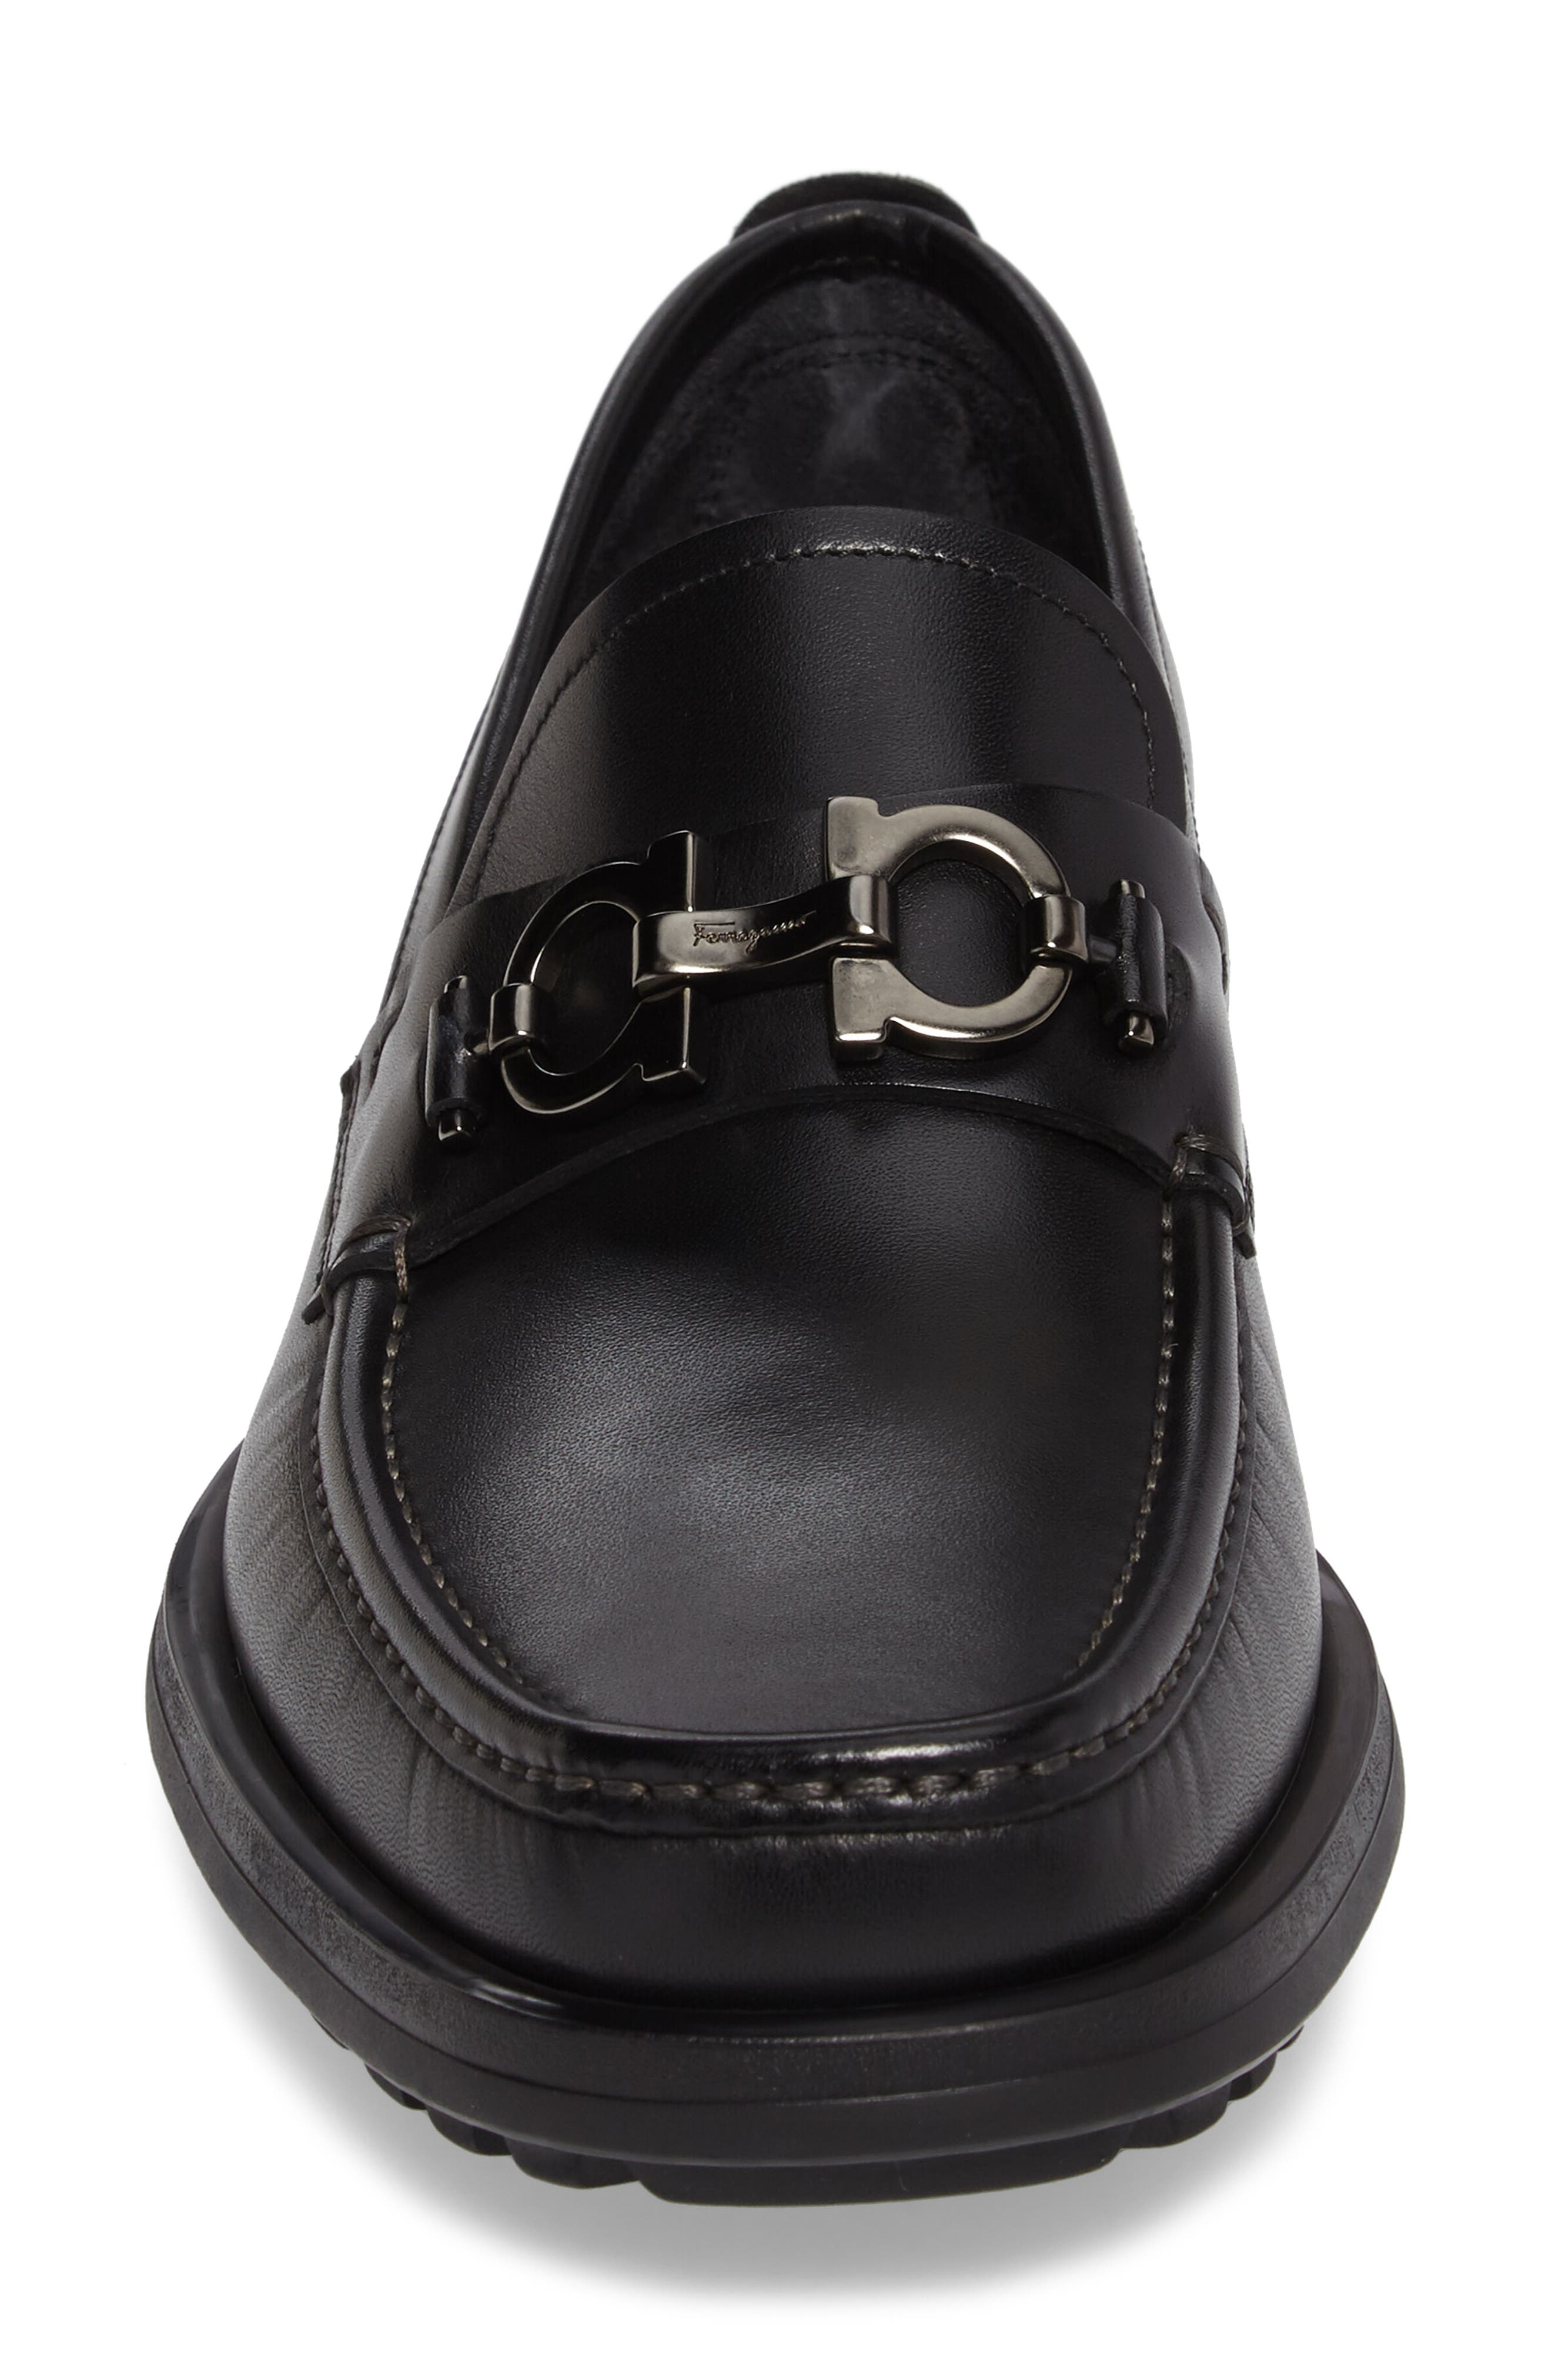 David Bit Loafer,                             Alternate thumbnail 4, color,                             BLACK LEATHER